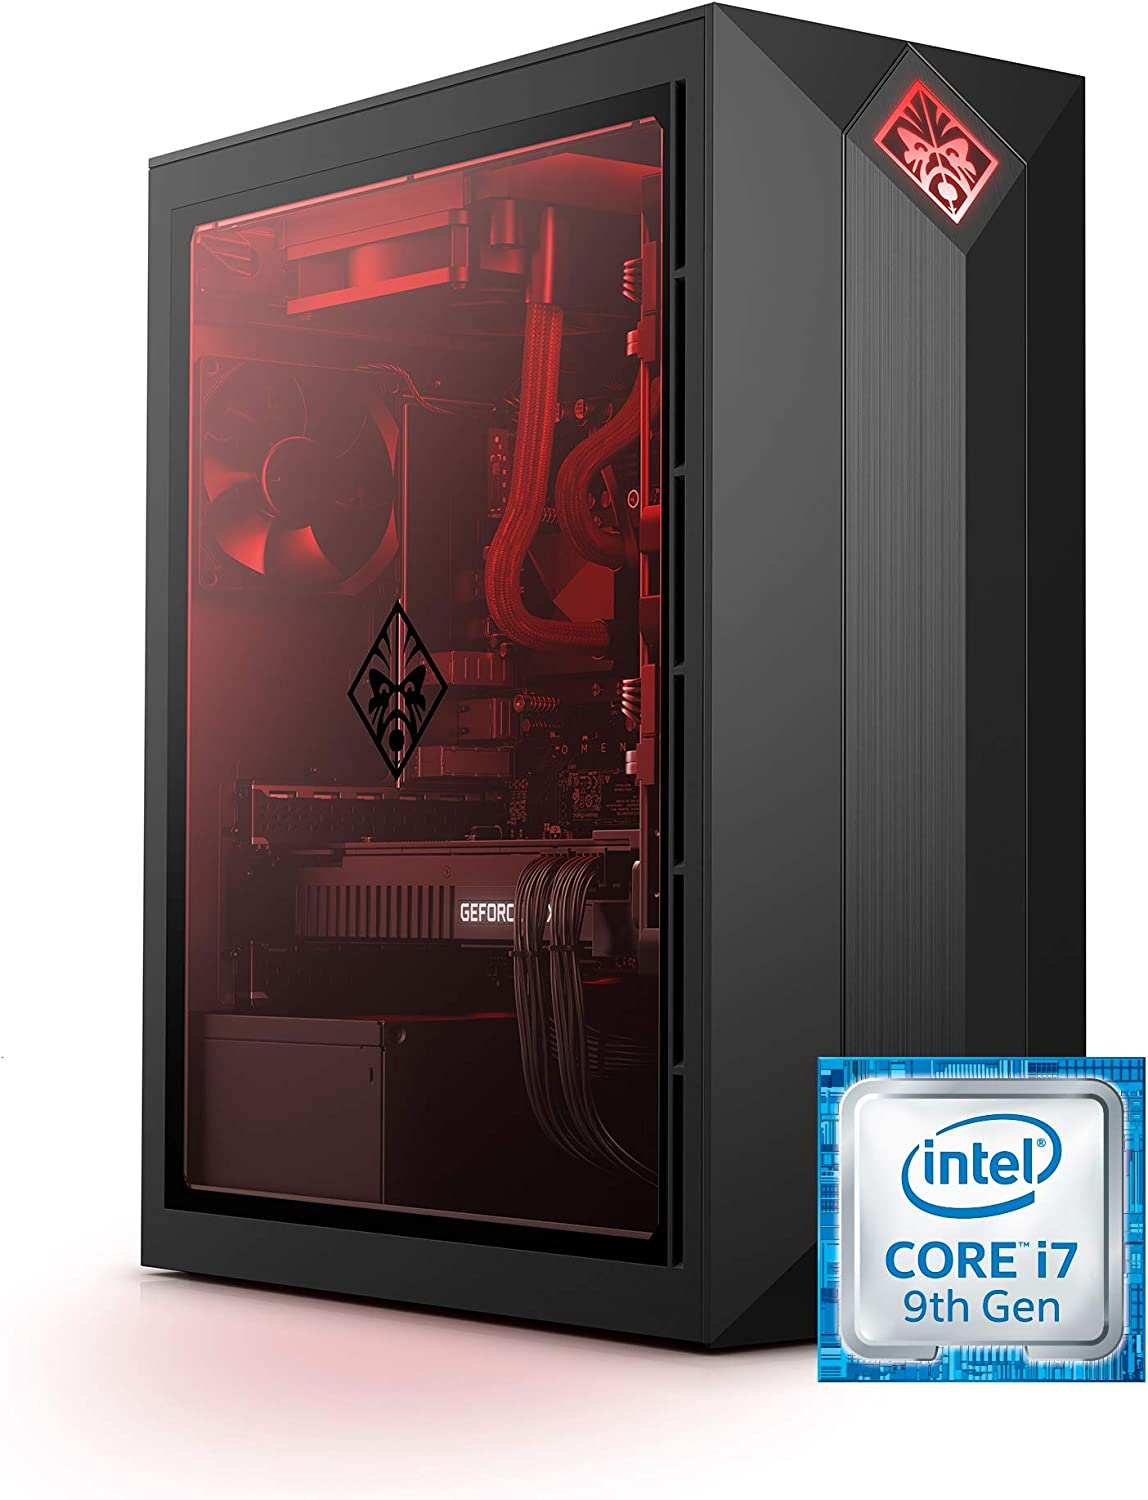 OMEN by HP Obelisk Gaming Desktop Computer, Intel Core i7-9700K Processor, NVIDIA GeForce RTX 2080 Super (8 GB), HyperX 16 GB RAM, 512 GB SSD & 1 TB HDD, Windows 10 Home (875-1130, Black)